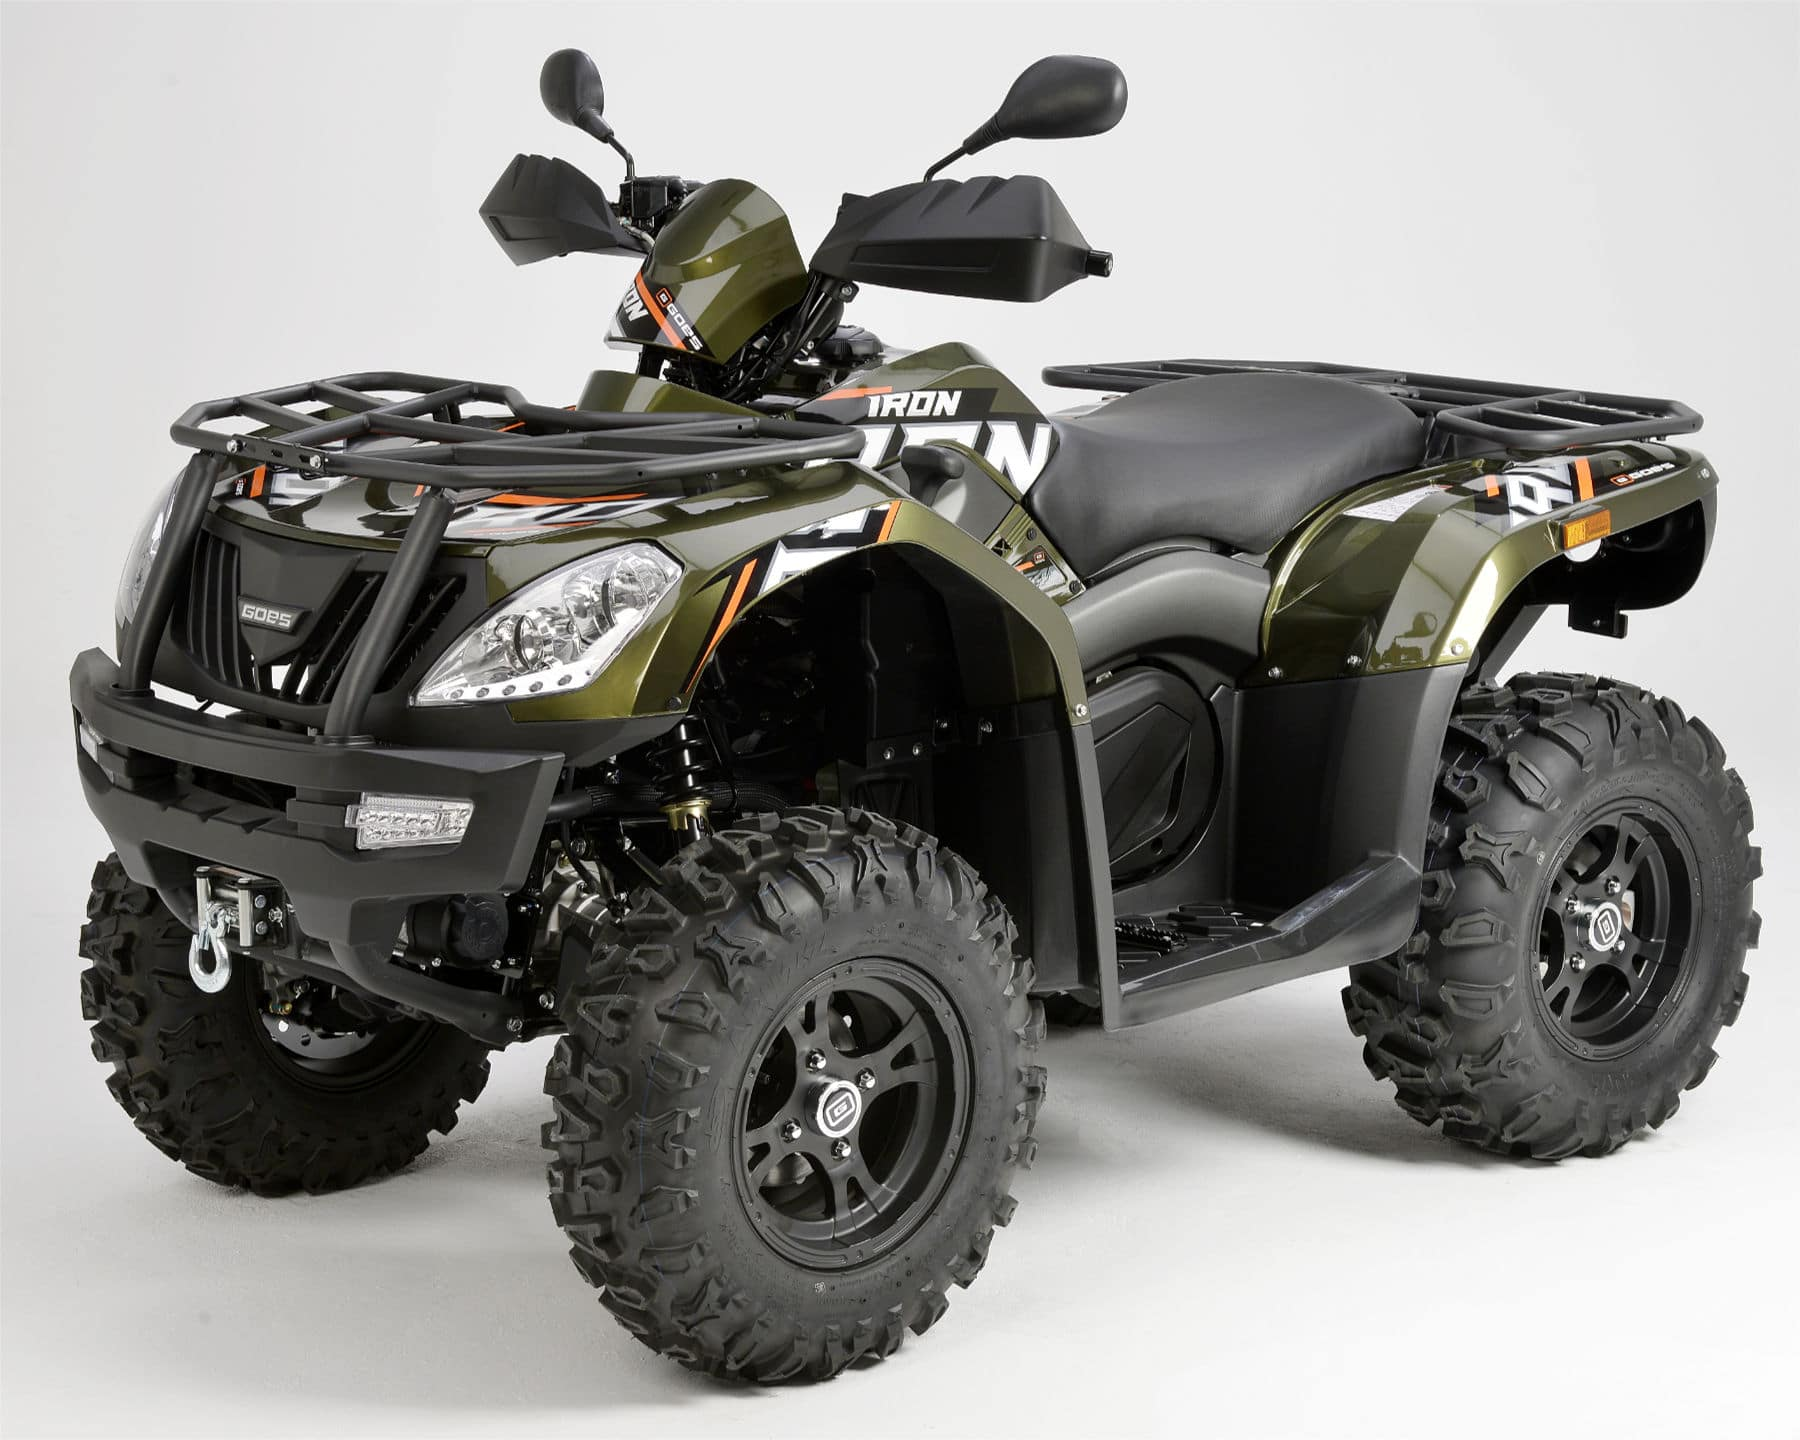 Grøn ATV iron